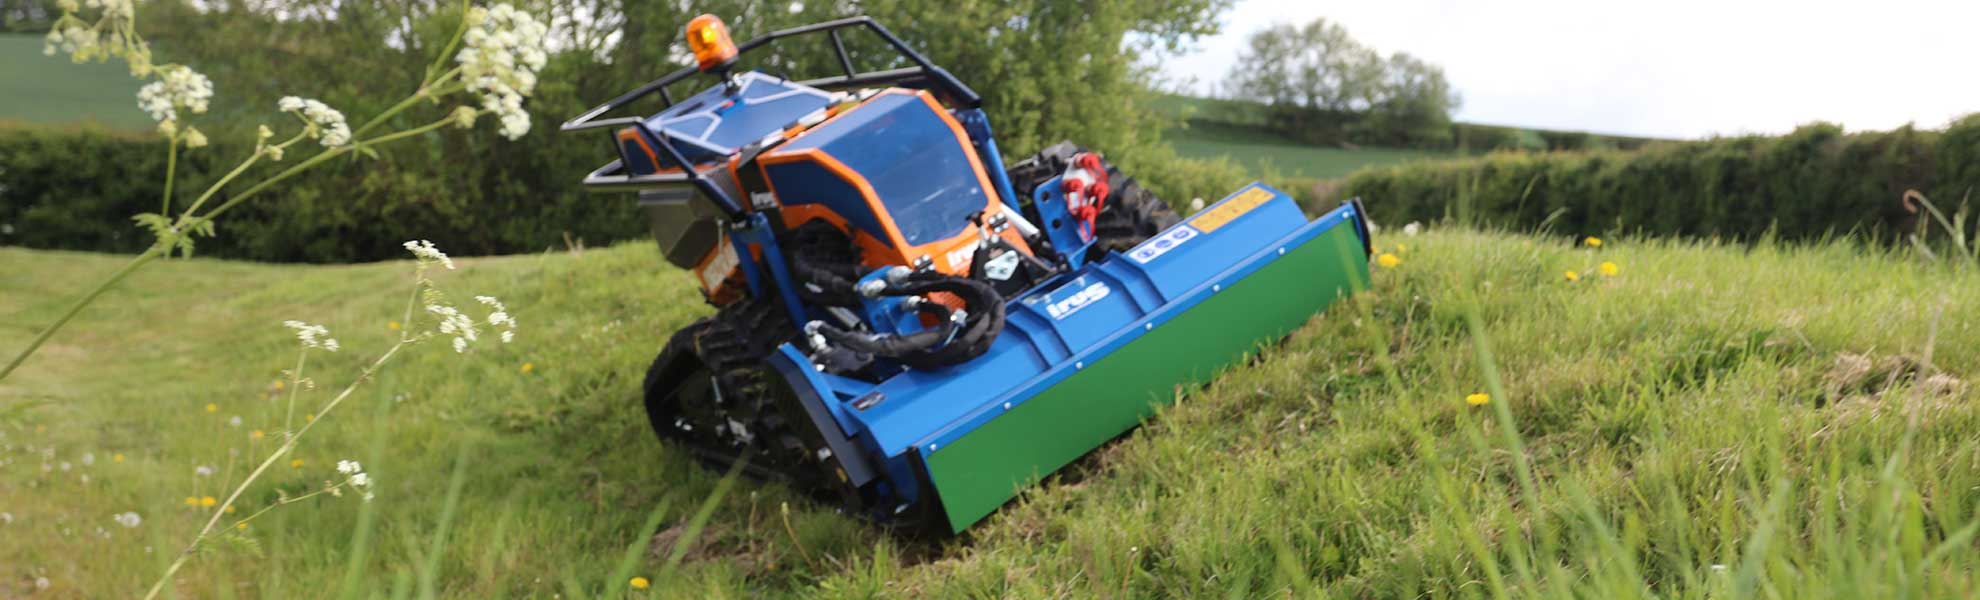 irus mower cutting grass on bank - Loxston Groundcare